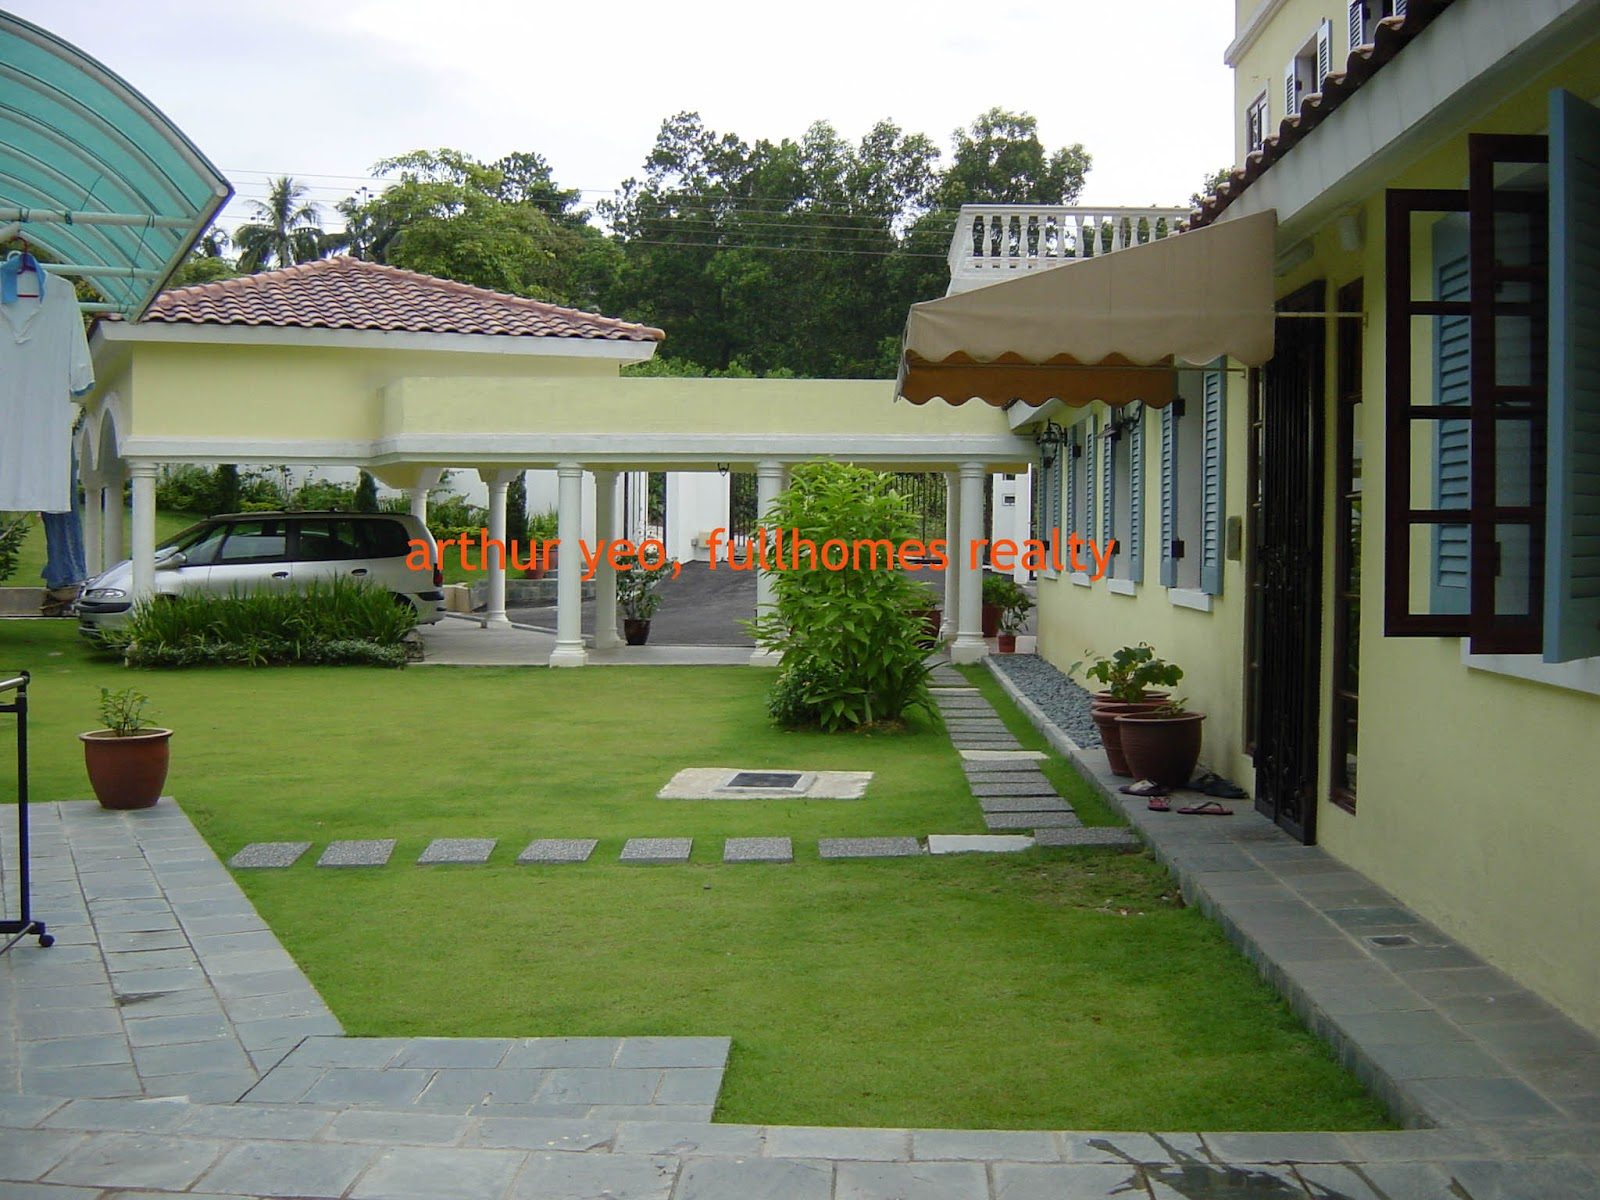 Patio Bungalow Vrijstaand Bungalows And Semi Detached Houses Available Welcome To